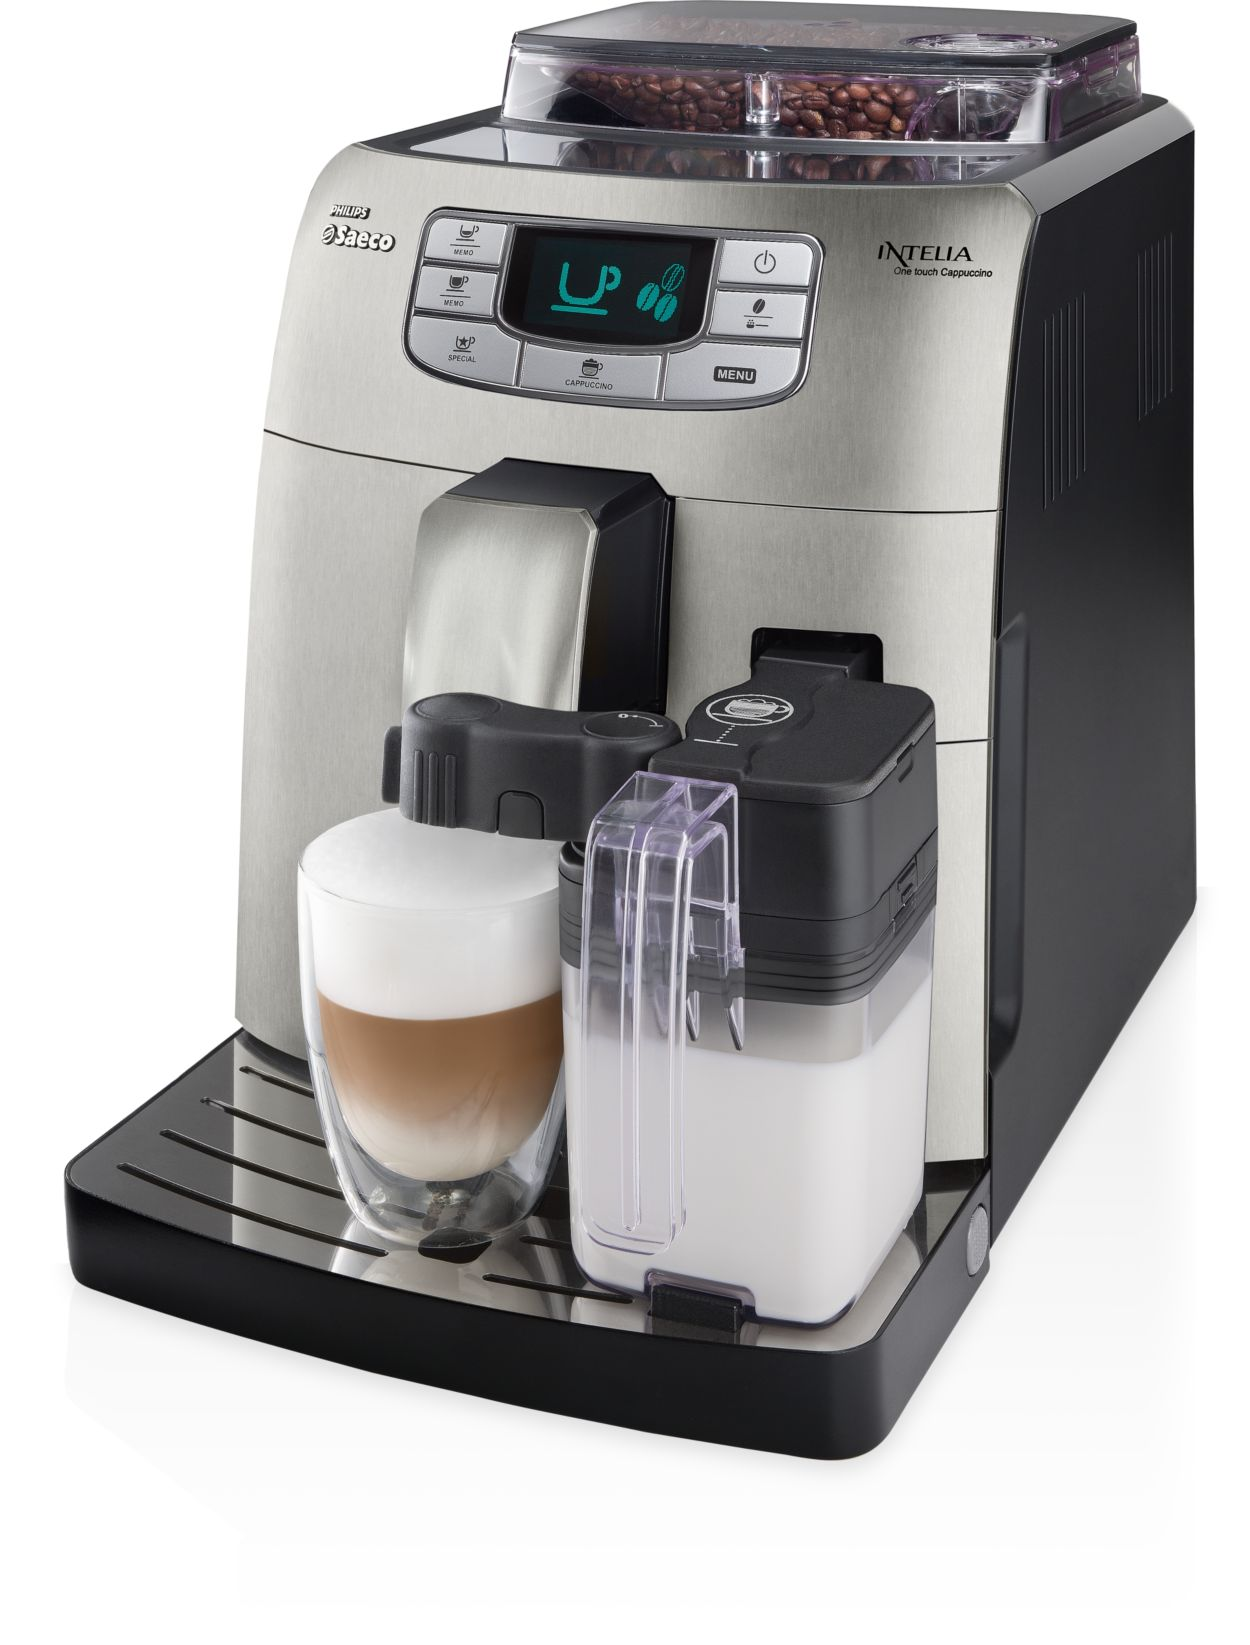 Intelia Super-automatic espresso machine HD8753/83 Saeco